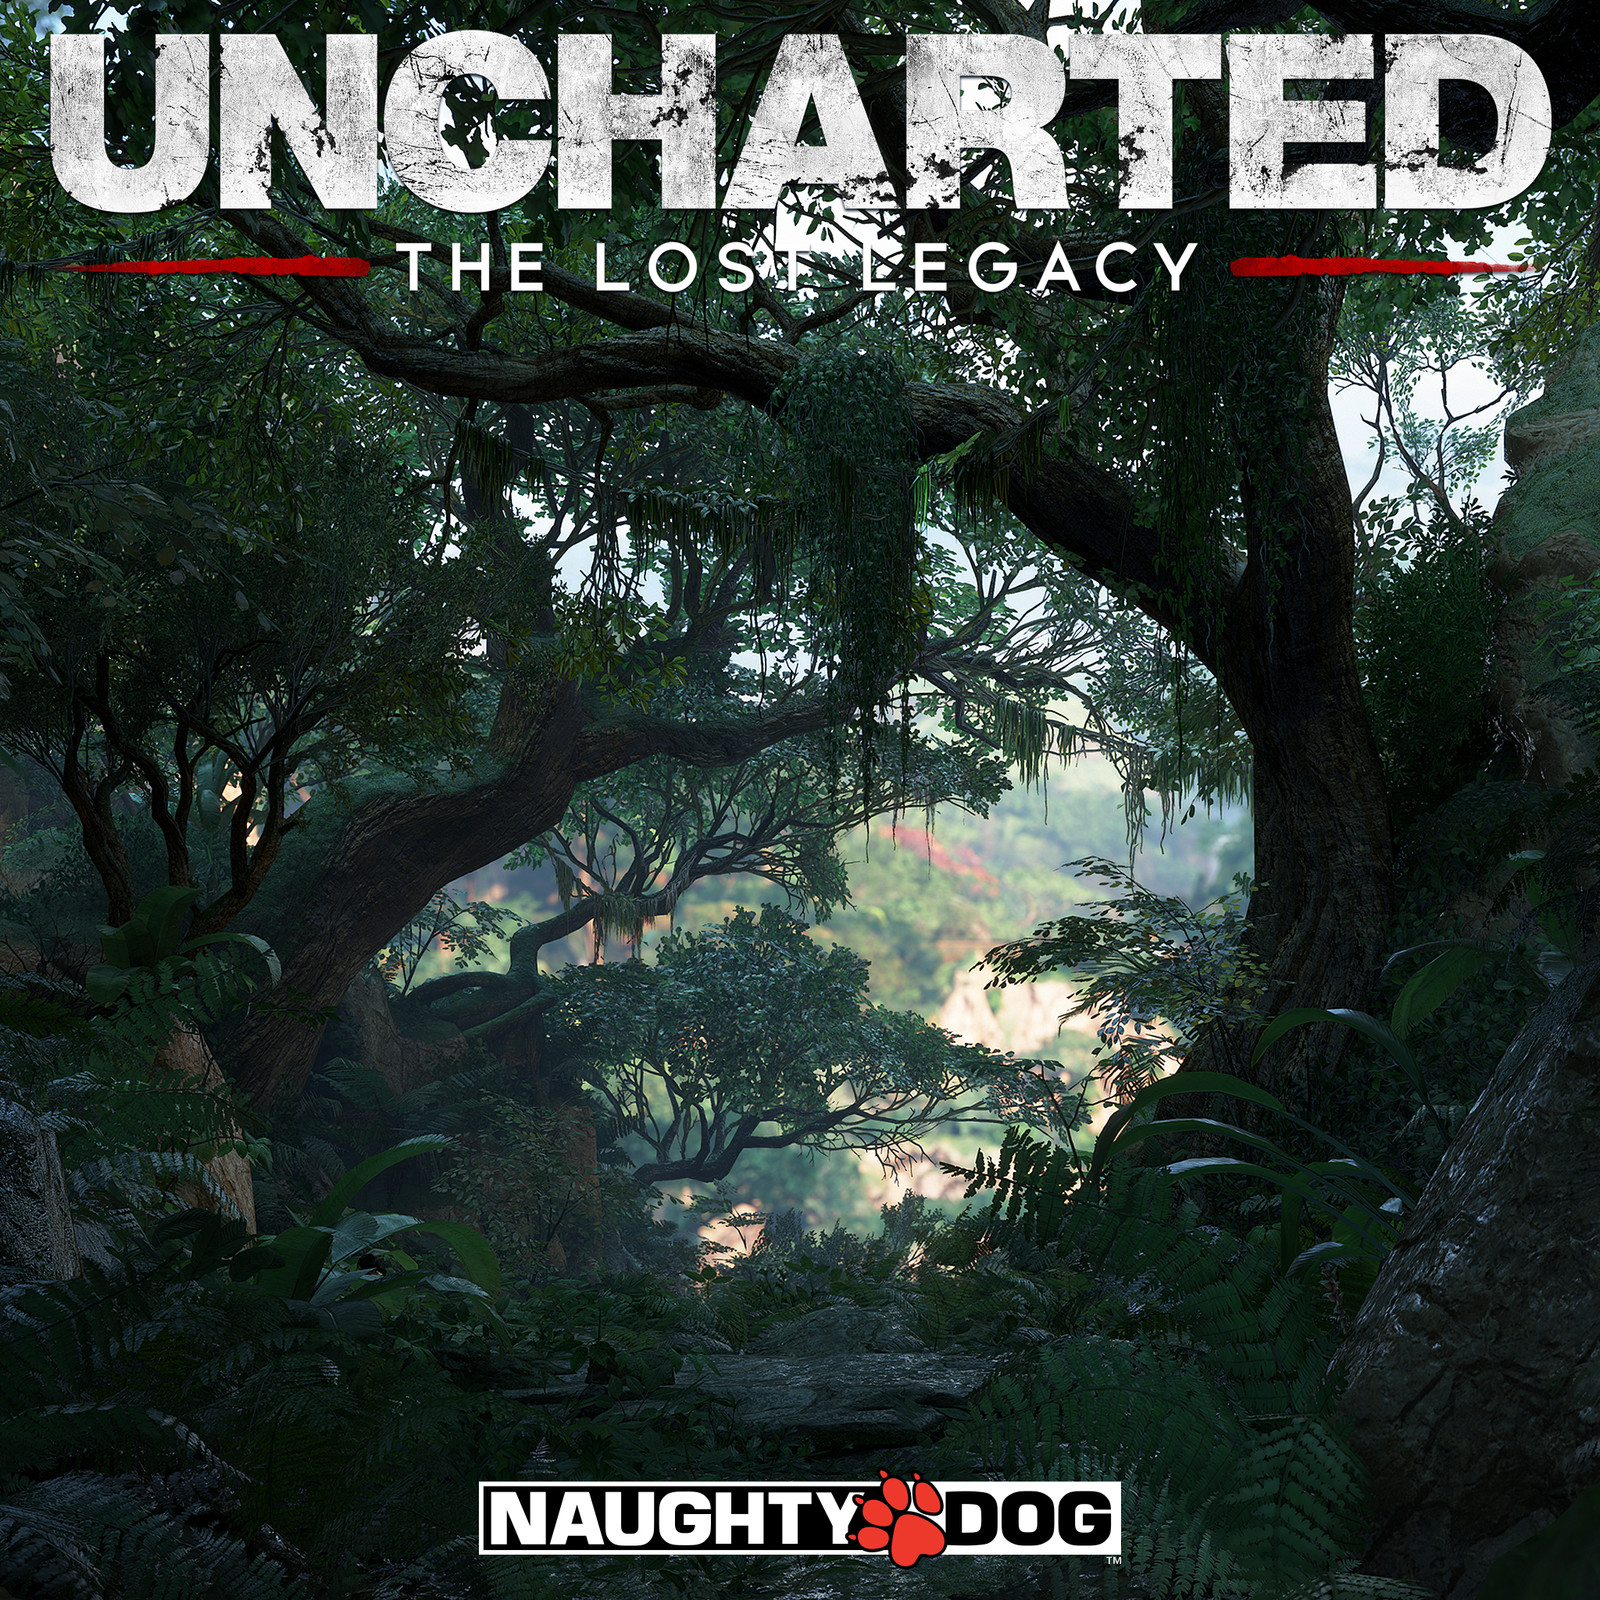 Uncharted The Lost Legacy - Ganesh - city of Halebidu - Jungle